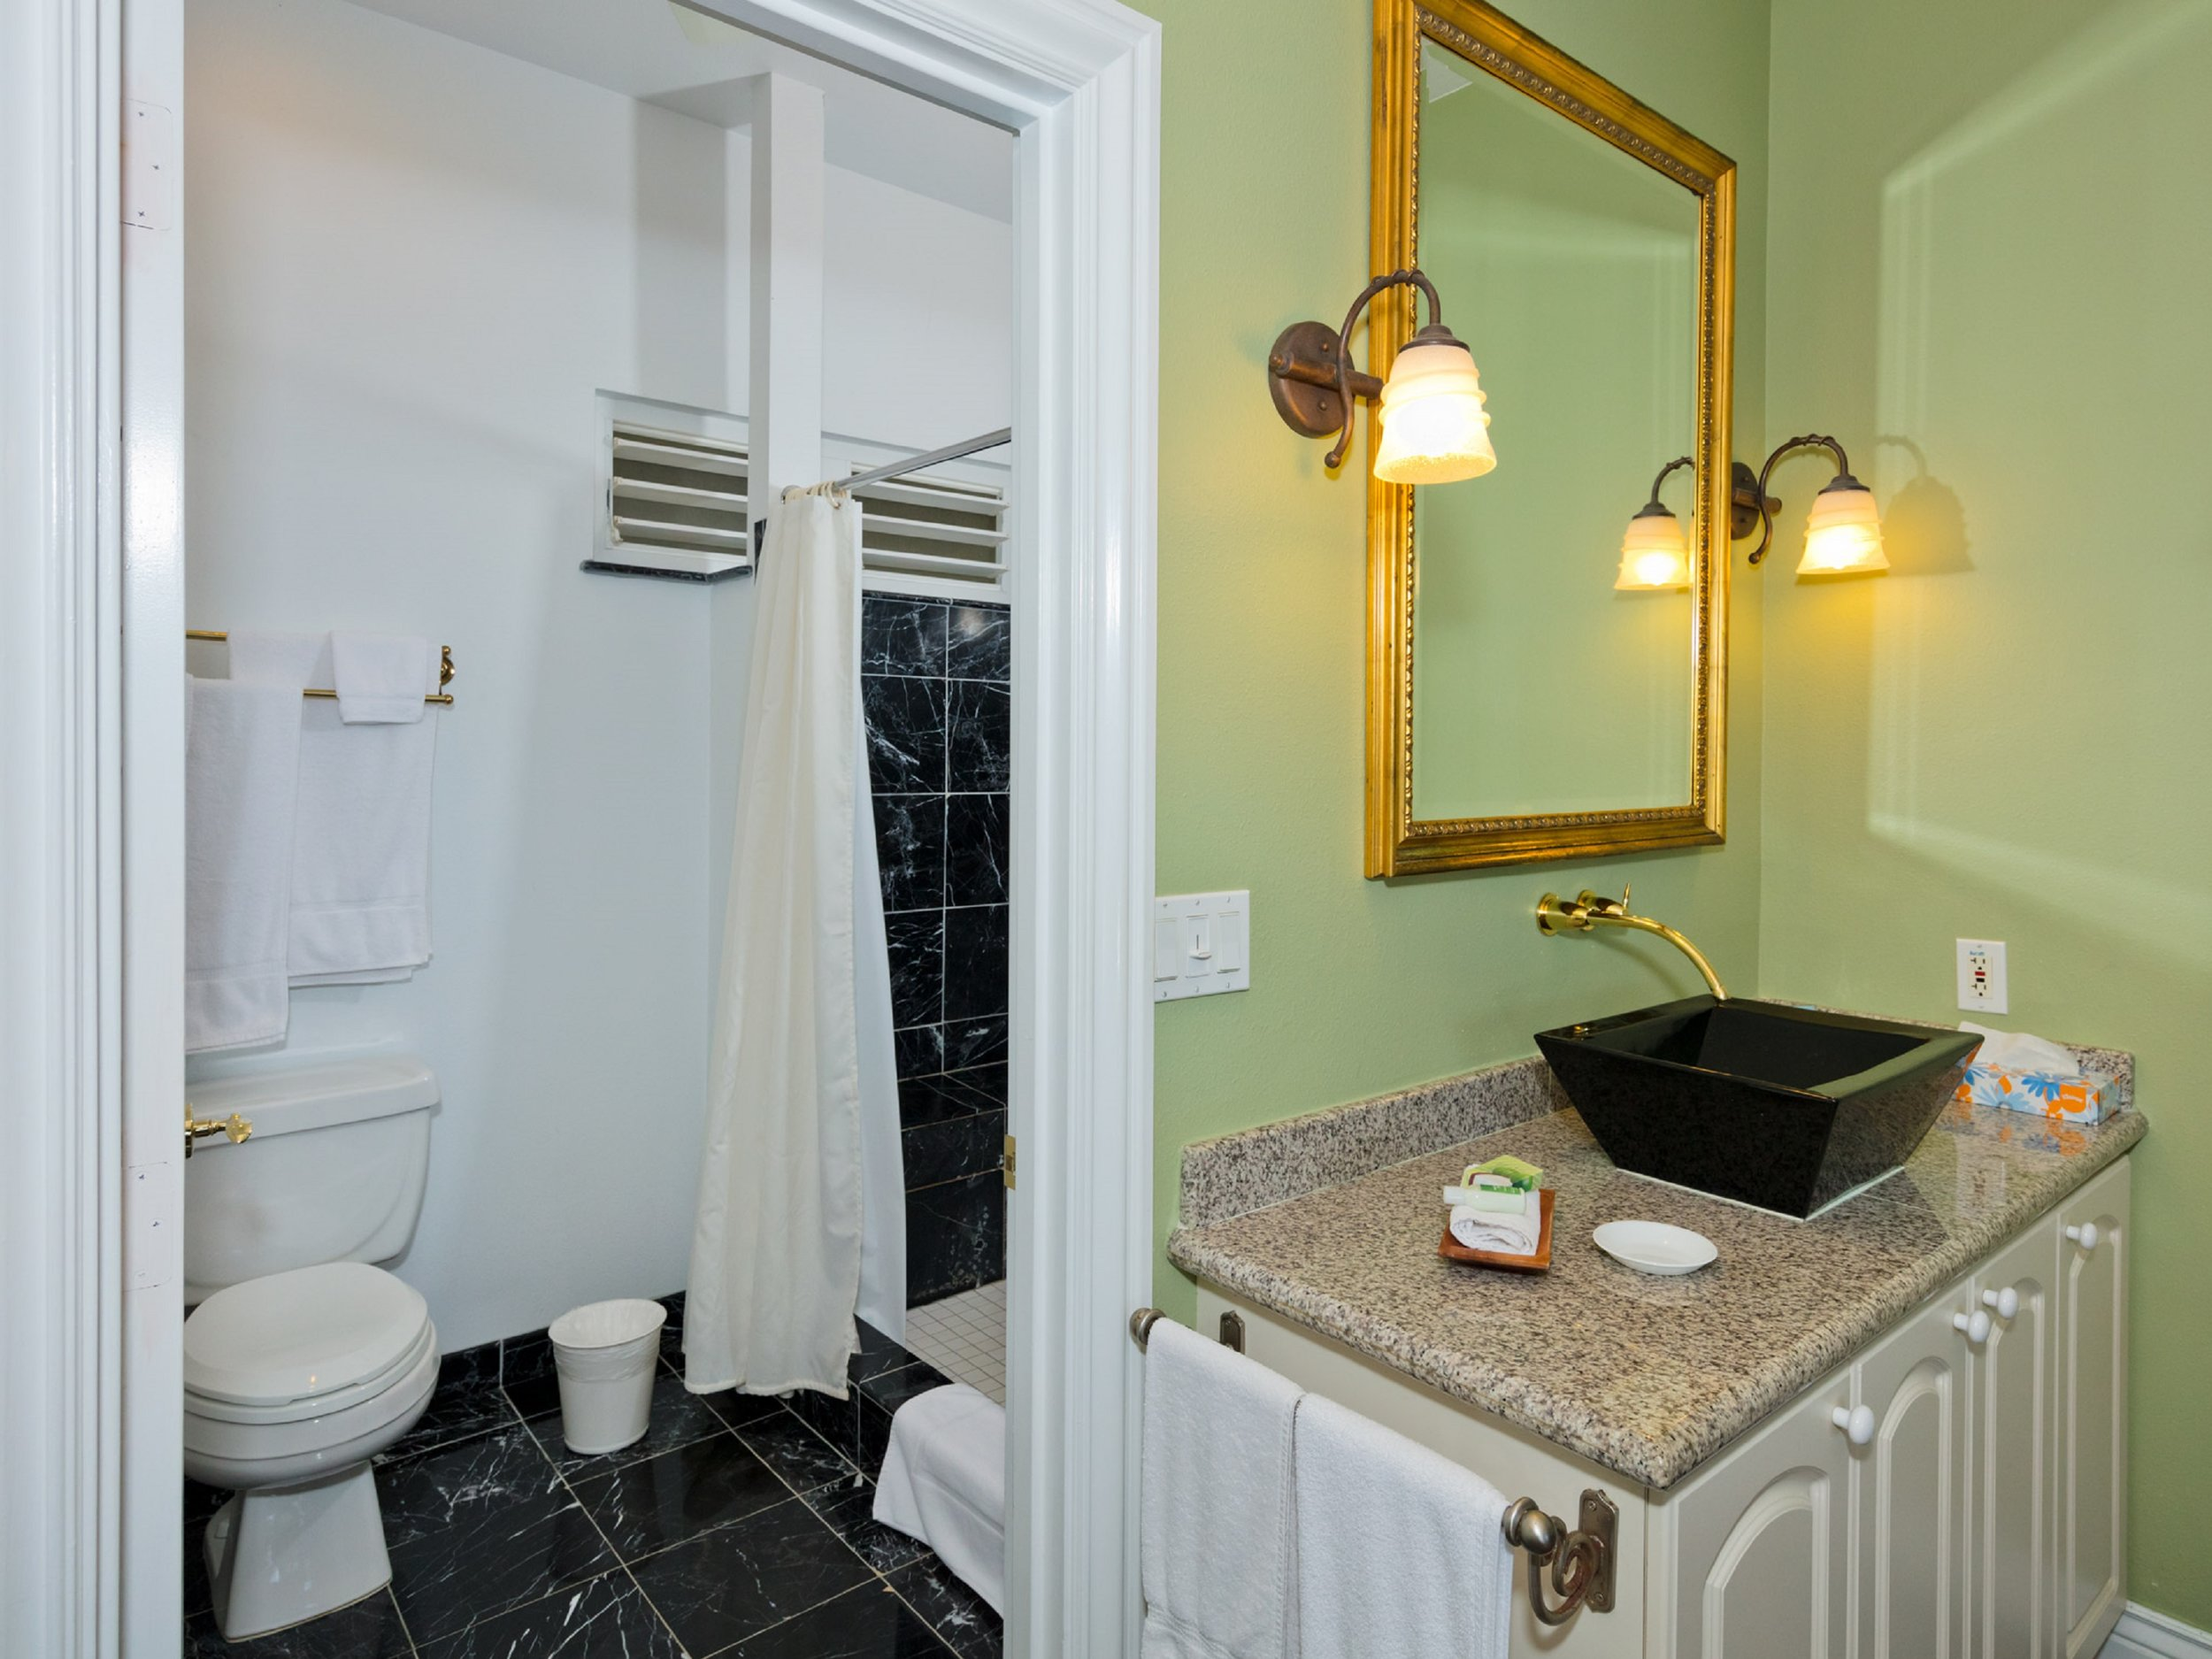 Enjoy a private bathroom in your room unlike typical bed & breakfasts